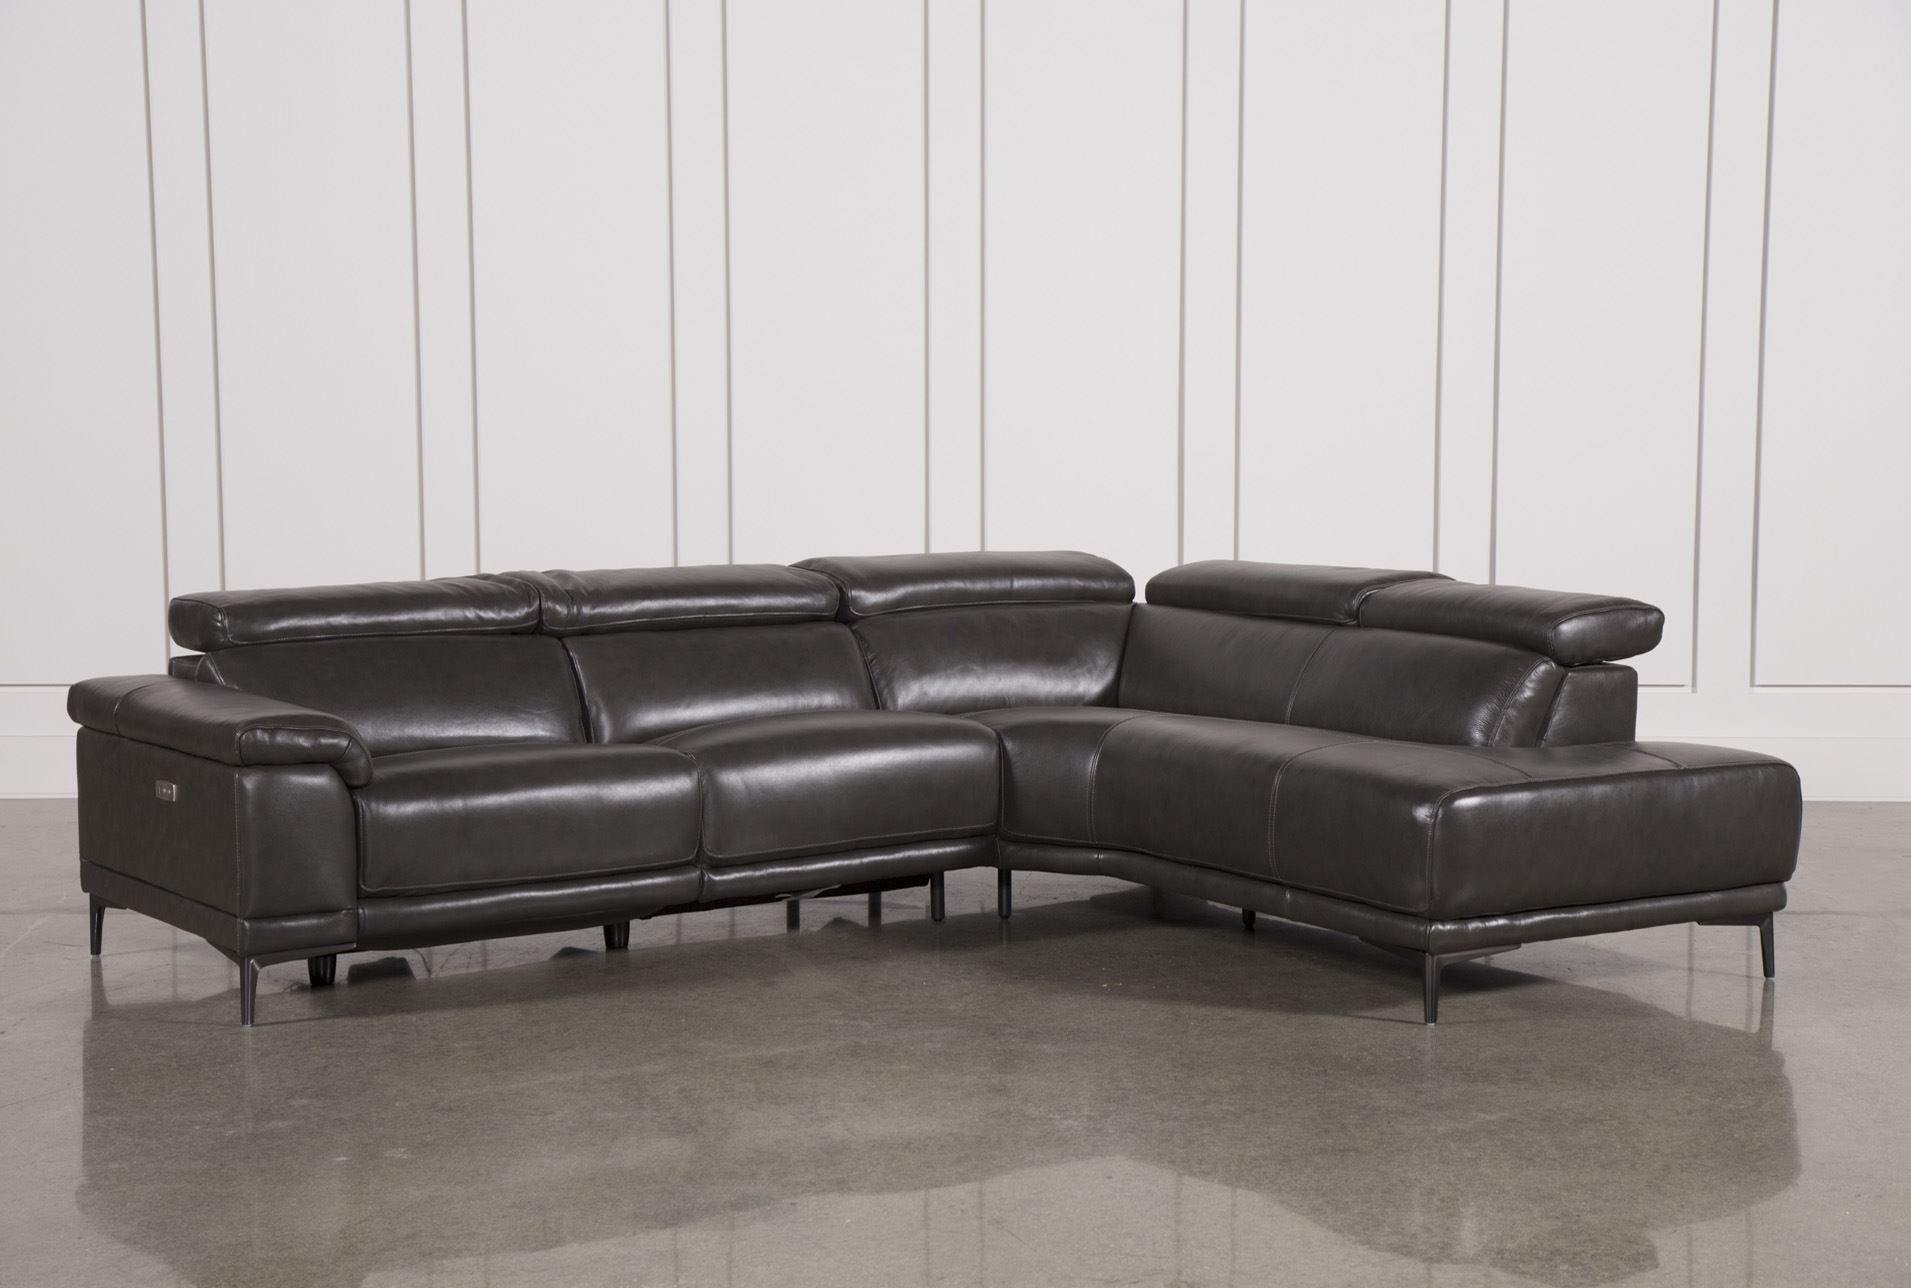 Tatum Dark Grey 2 Piece Sectional W/raf Chaise | New Apt | Pinterest inside Turdur 3 Piece Sectionals With Raf Loveseat (Image 30 of 30)